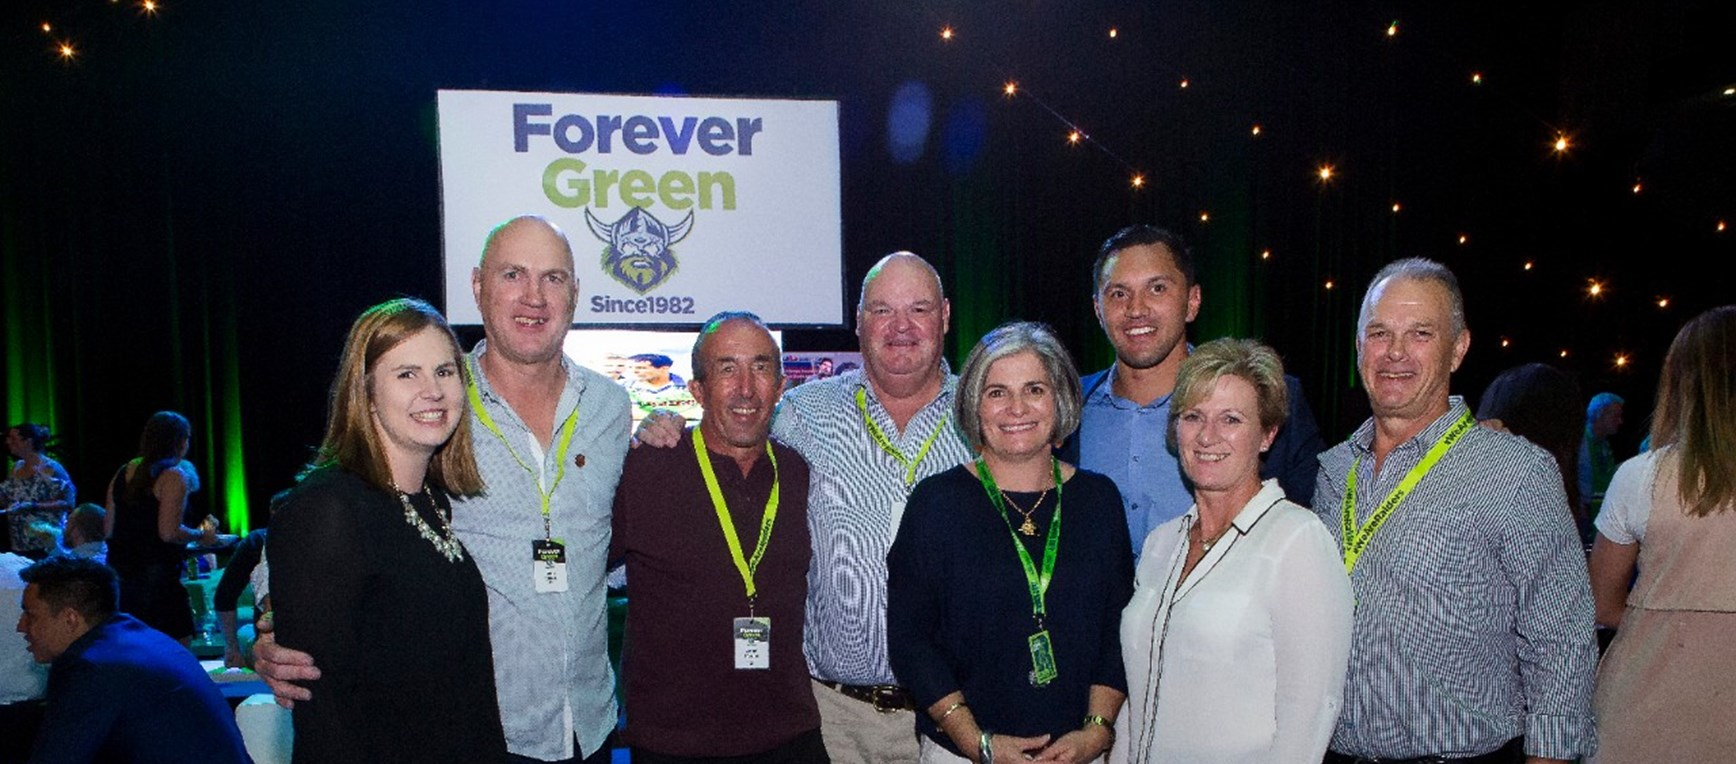 Gallery: Forever Green Function